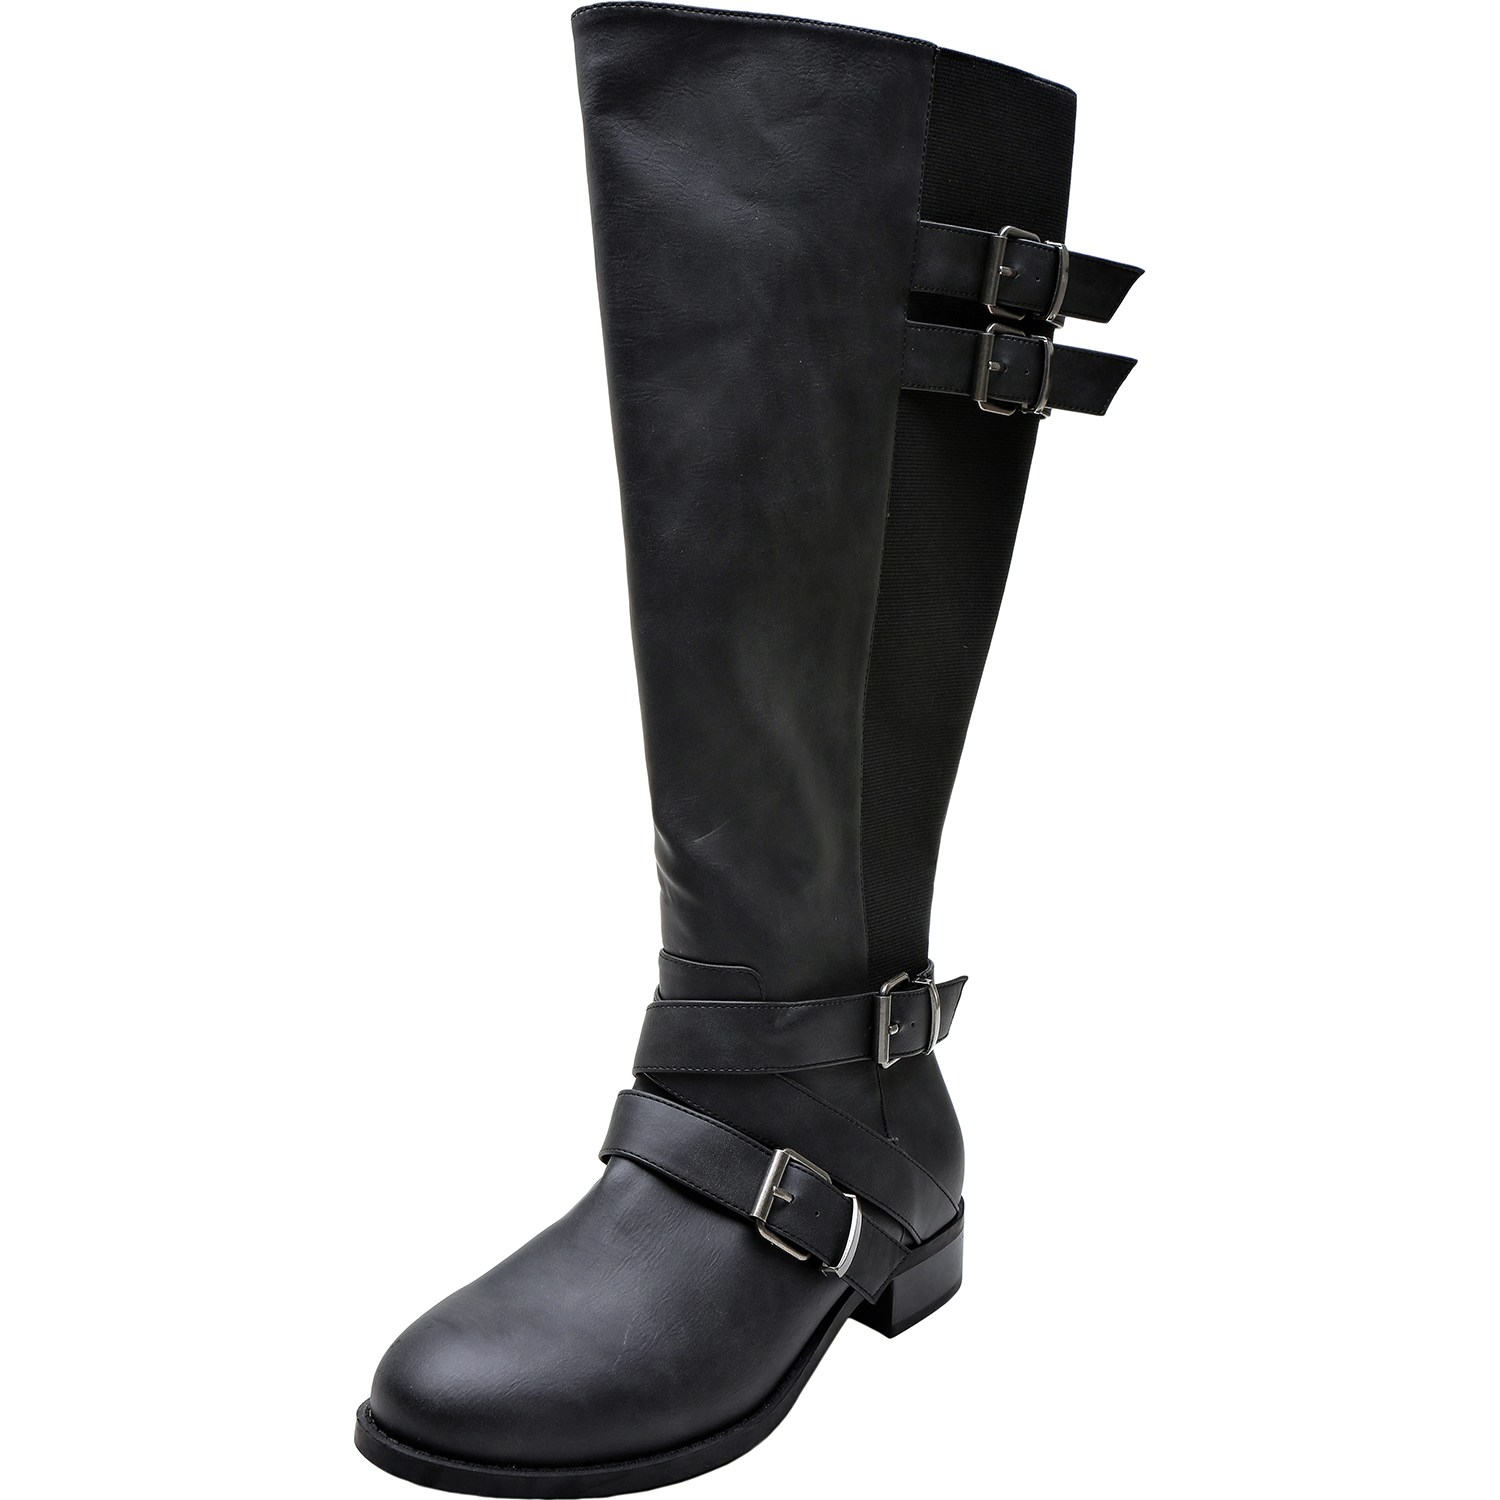 5ed0504c6af US  69.99 - Women s Wide Width Knee High Boots - Chunky Low Heel Buckle  Detial Elastic Zipper Winter Boots.(Extra Wide Calf) - www.luoika-us.com